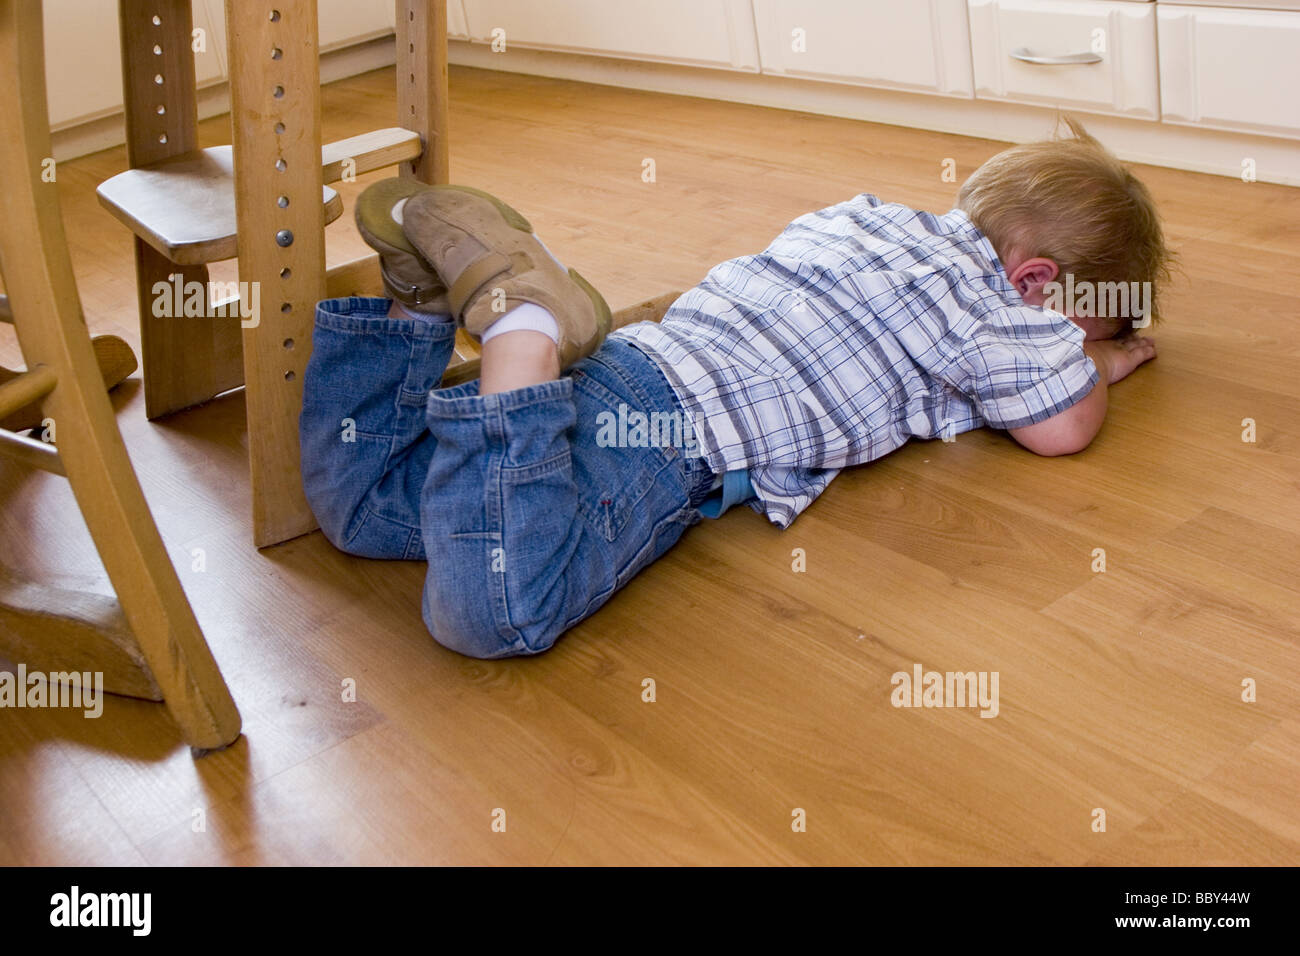 Little child throwing a temper tantrum at home. The toddler is down on the floor, hiding his face, out of control - Stock Image